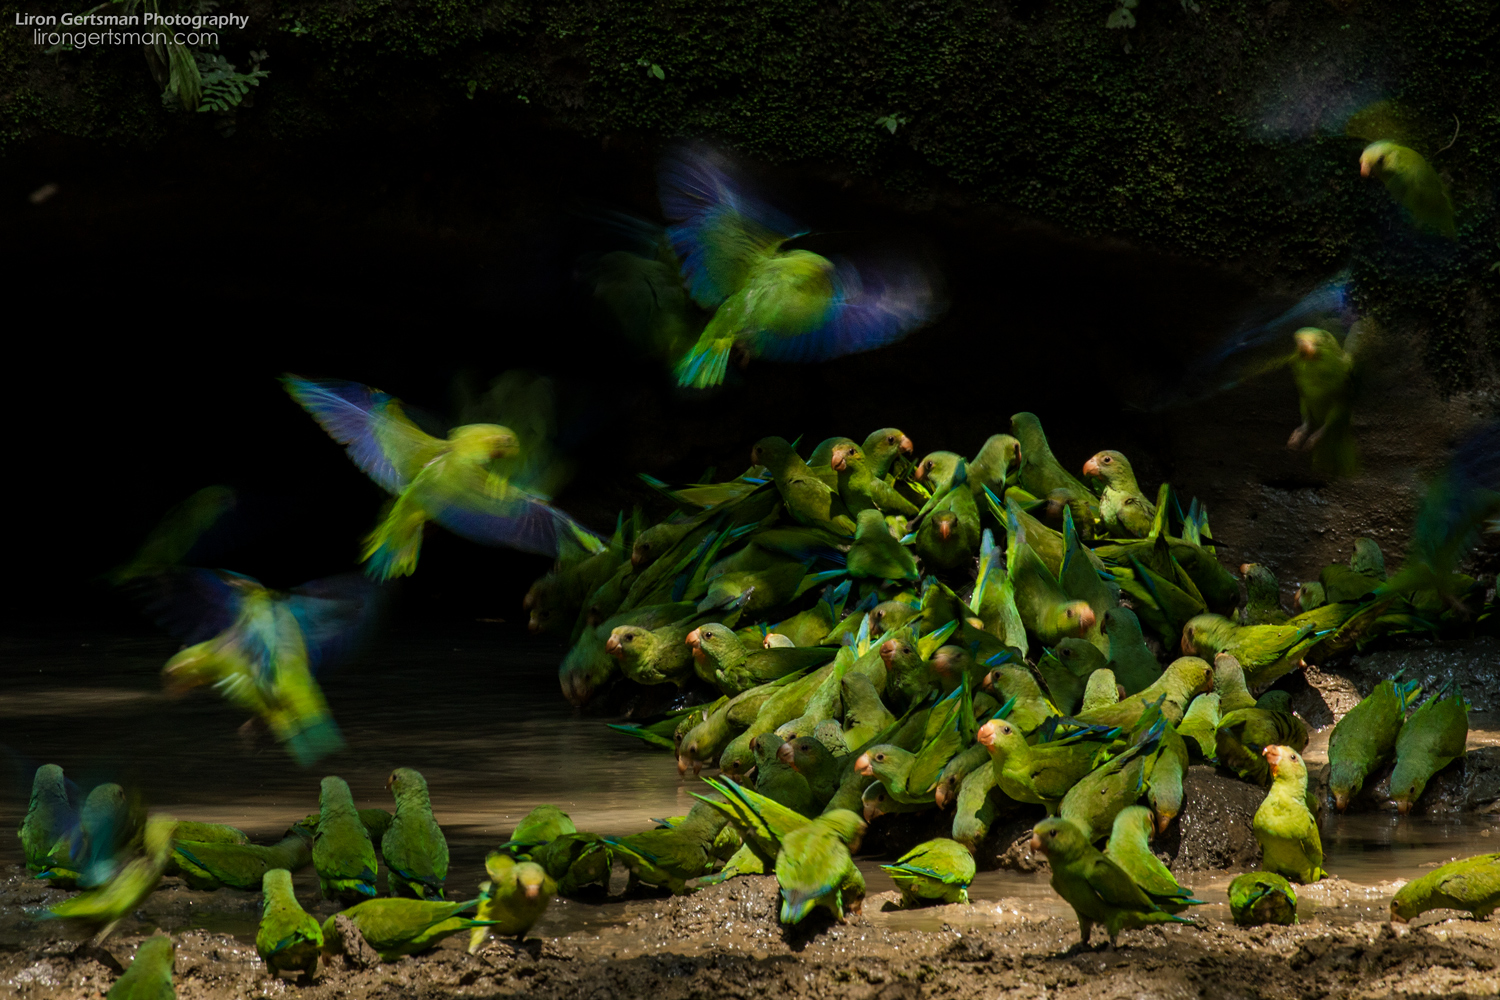 """Cobalt-winged Parakeets land on the forest floor to drink mineral-rich water and eat nutrient rich mud. This image was """"highly commended"""" in the age 15-17 category of Wildlife Photographer of the Year 54 (2018)."""